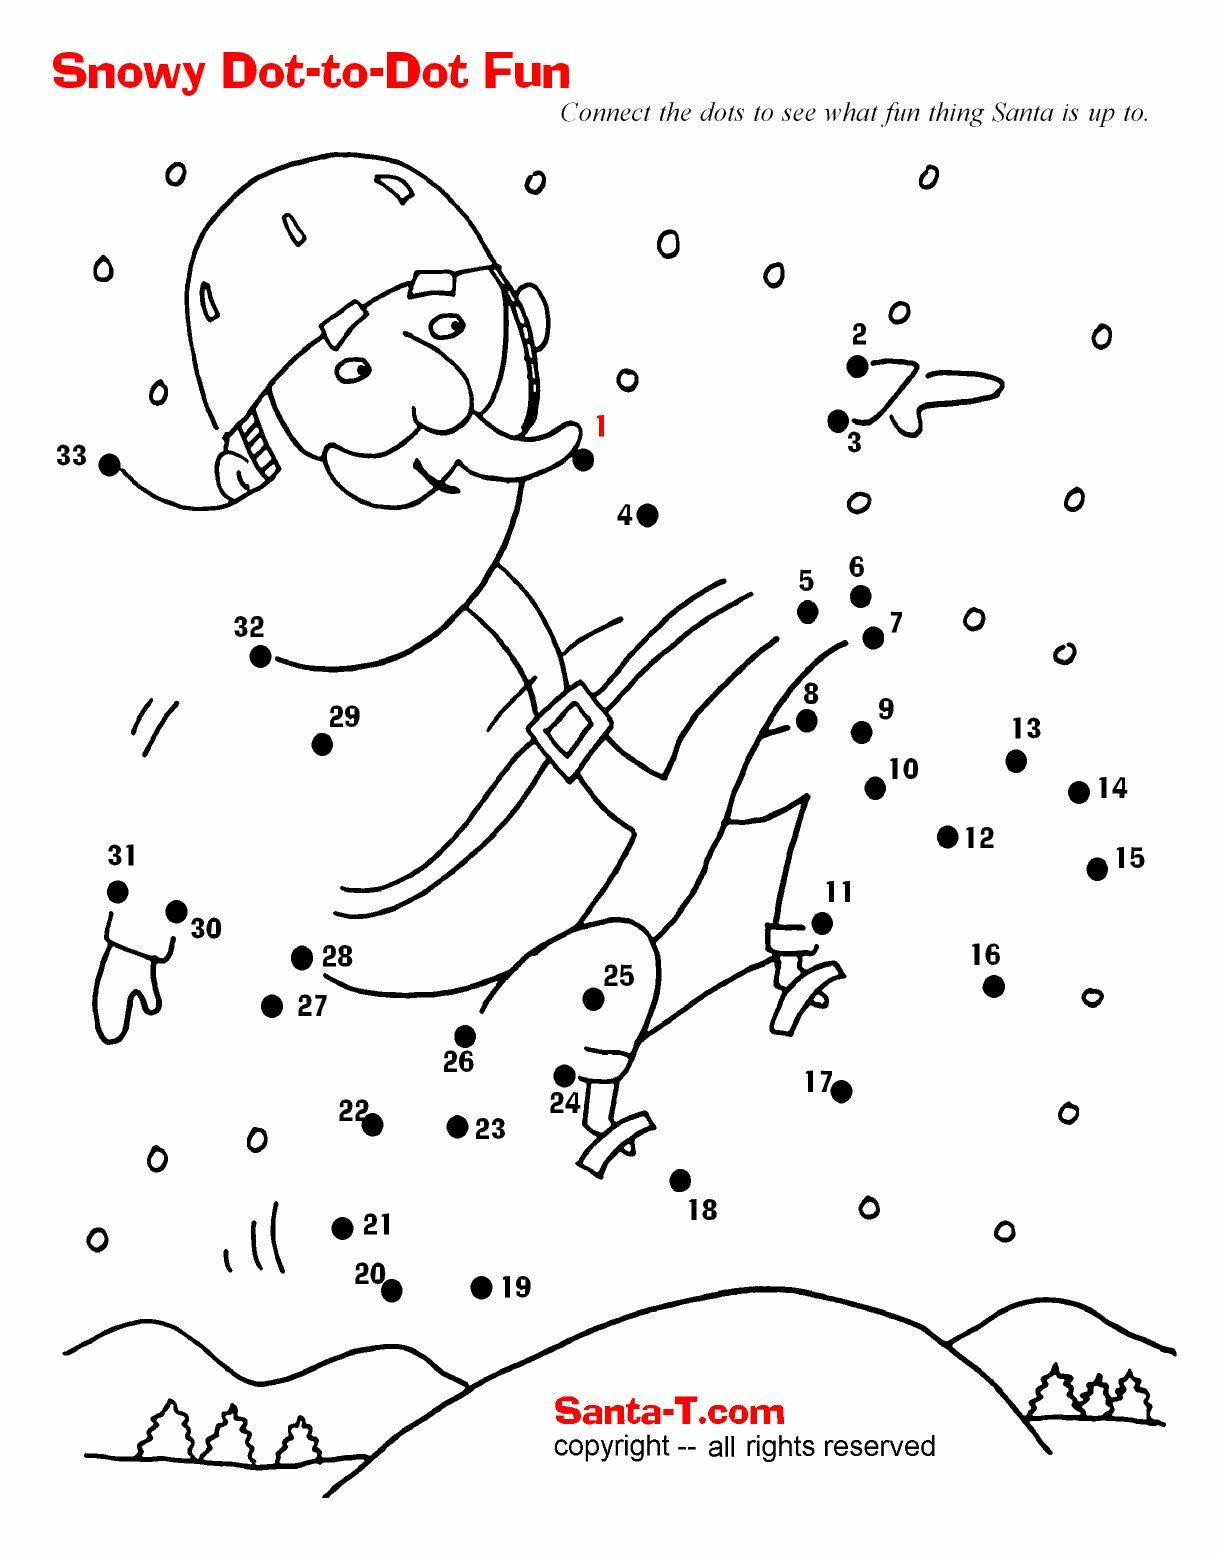 Connect the Dots Christmas Printables Snowboarding Santa Dot to Dot